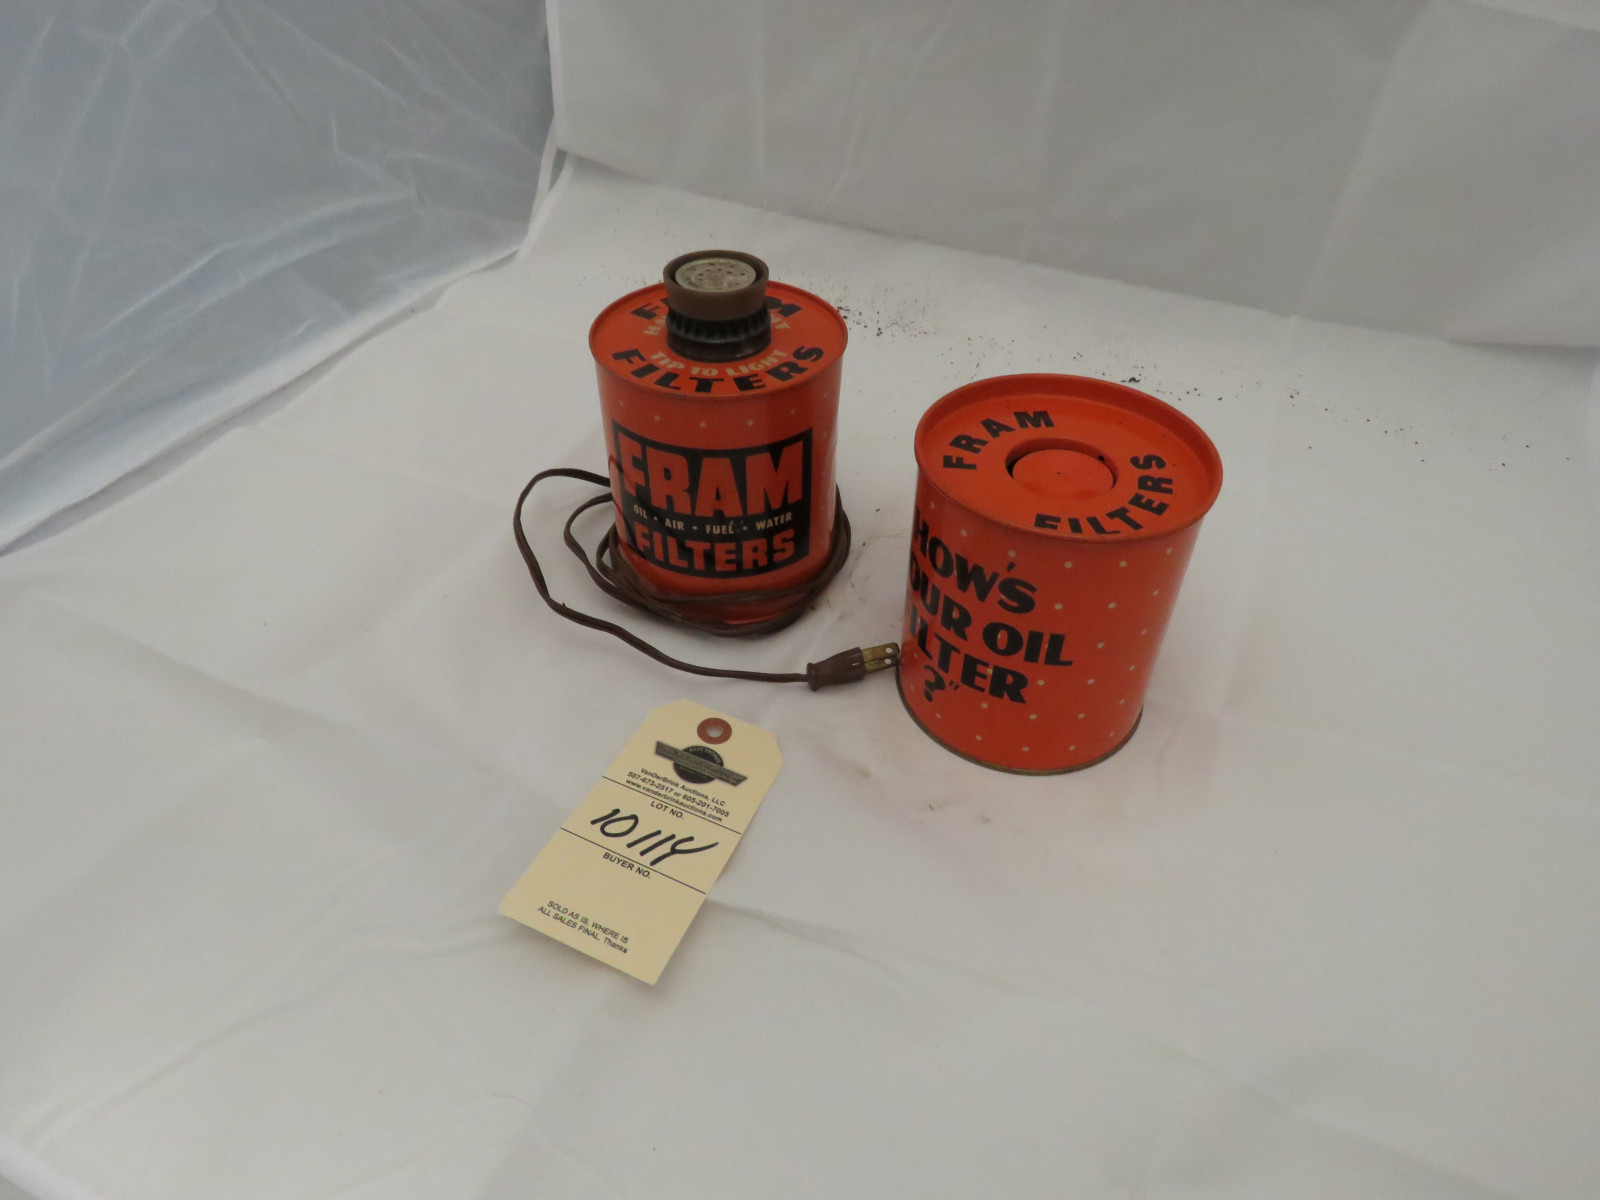 Fram Oil Cigar Lighter and Ashtray - Image 2